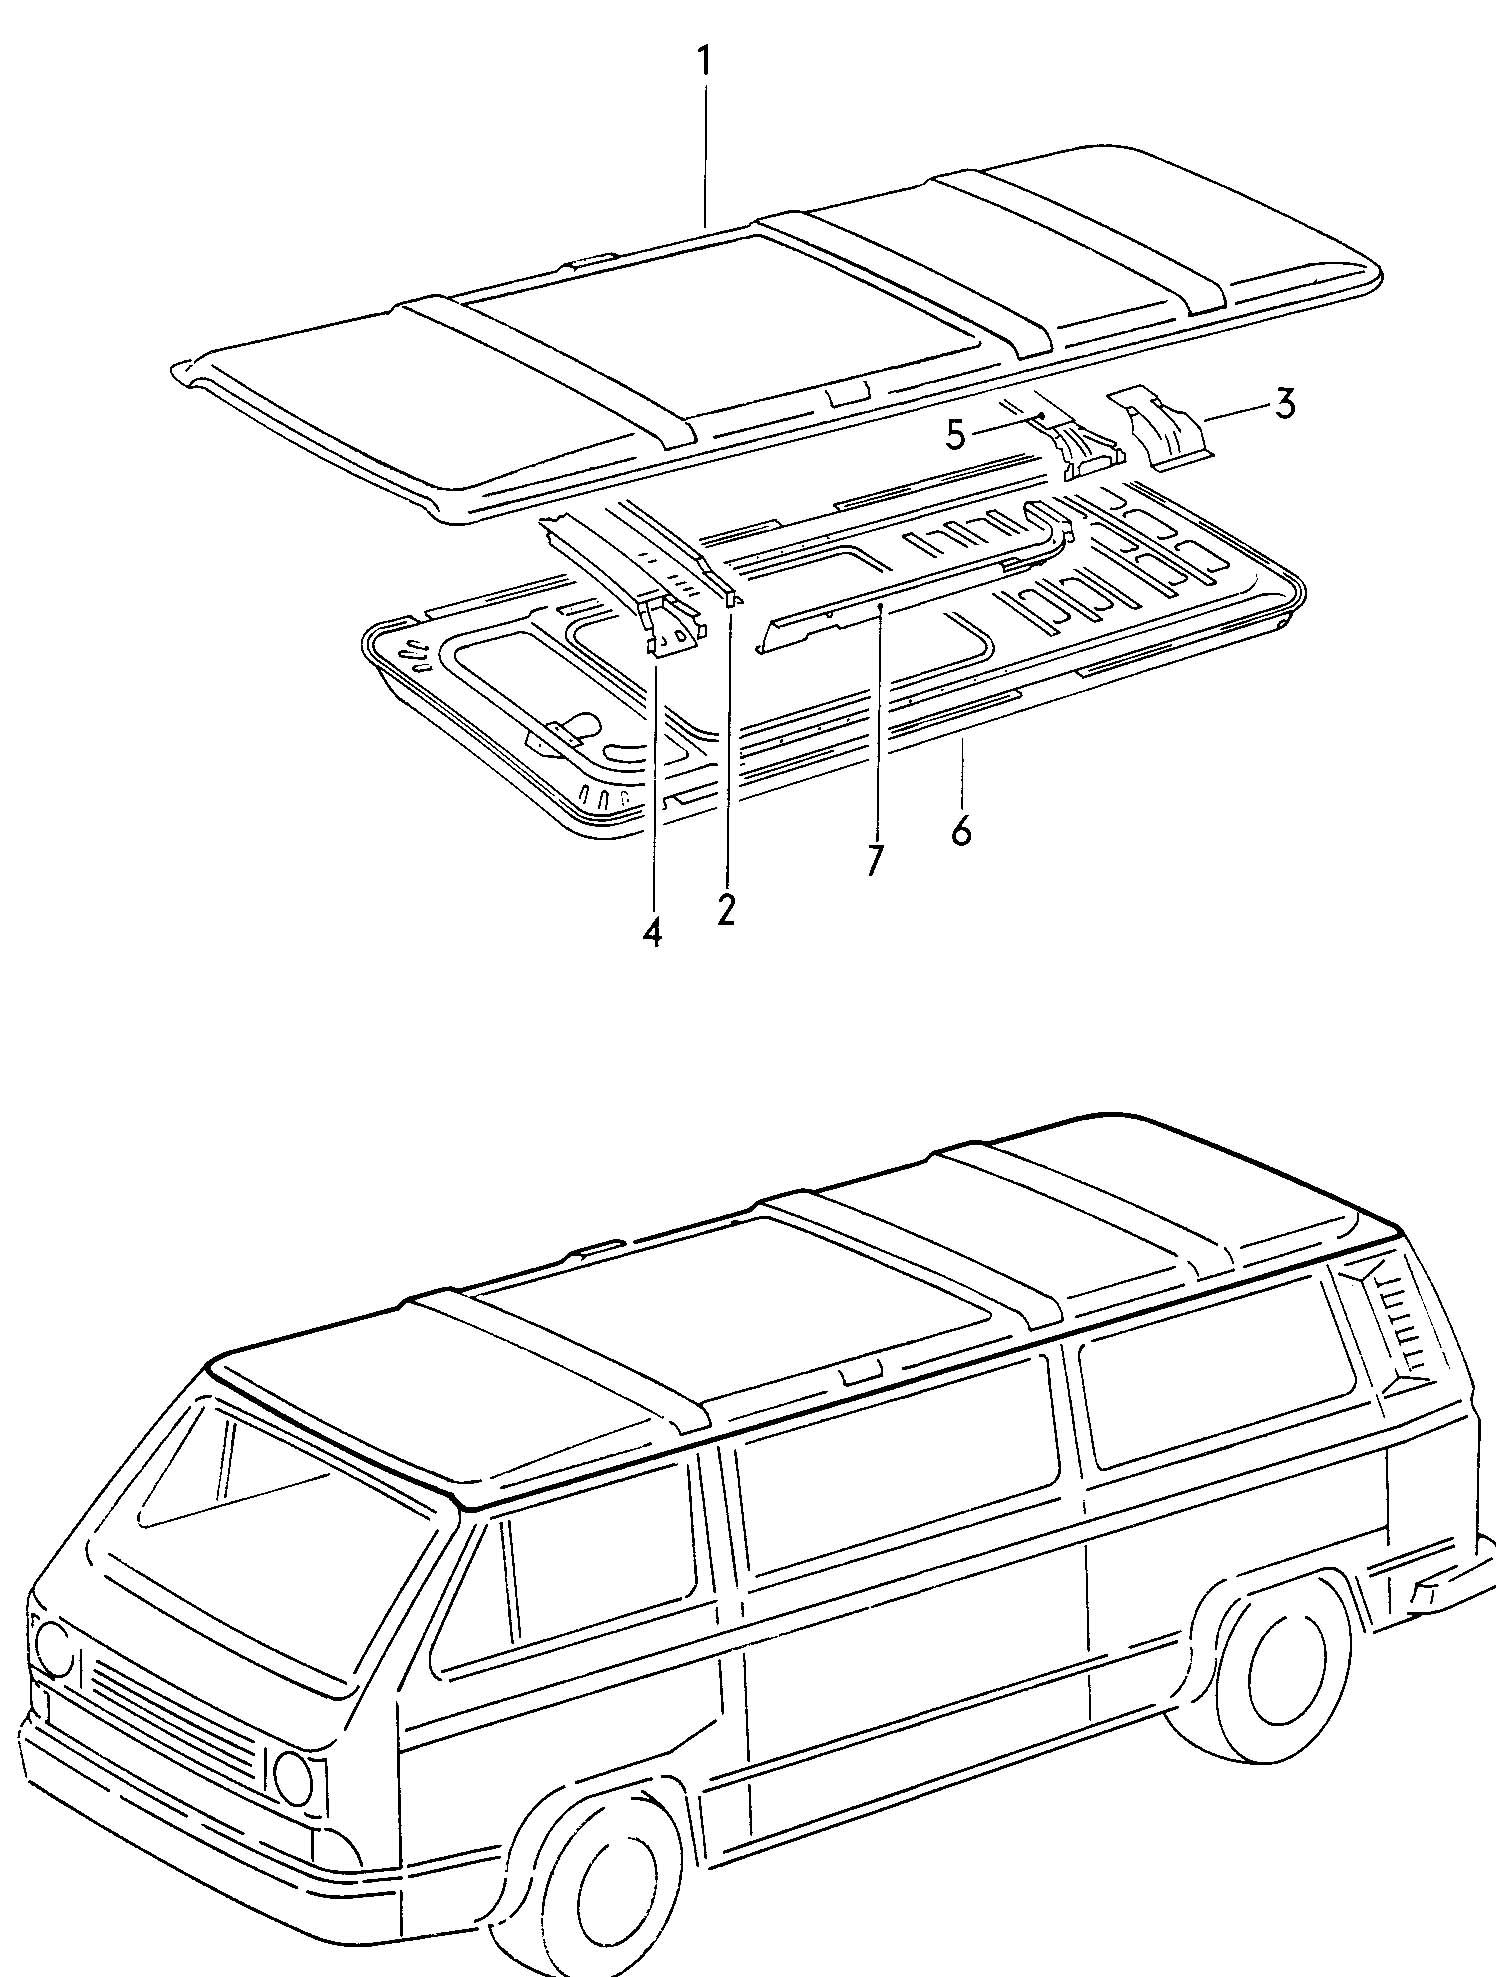 Roof For Vehicles With Manual Sliding Roof Volkswagen Vw